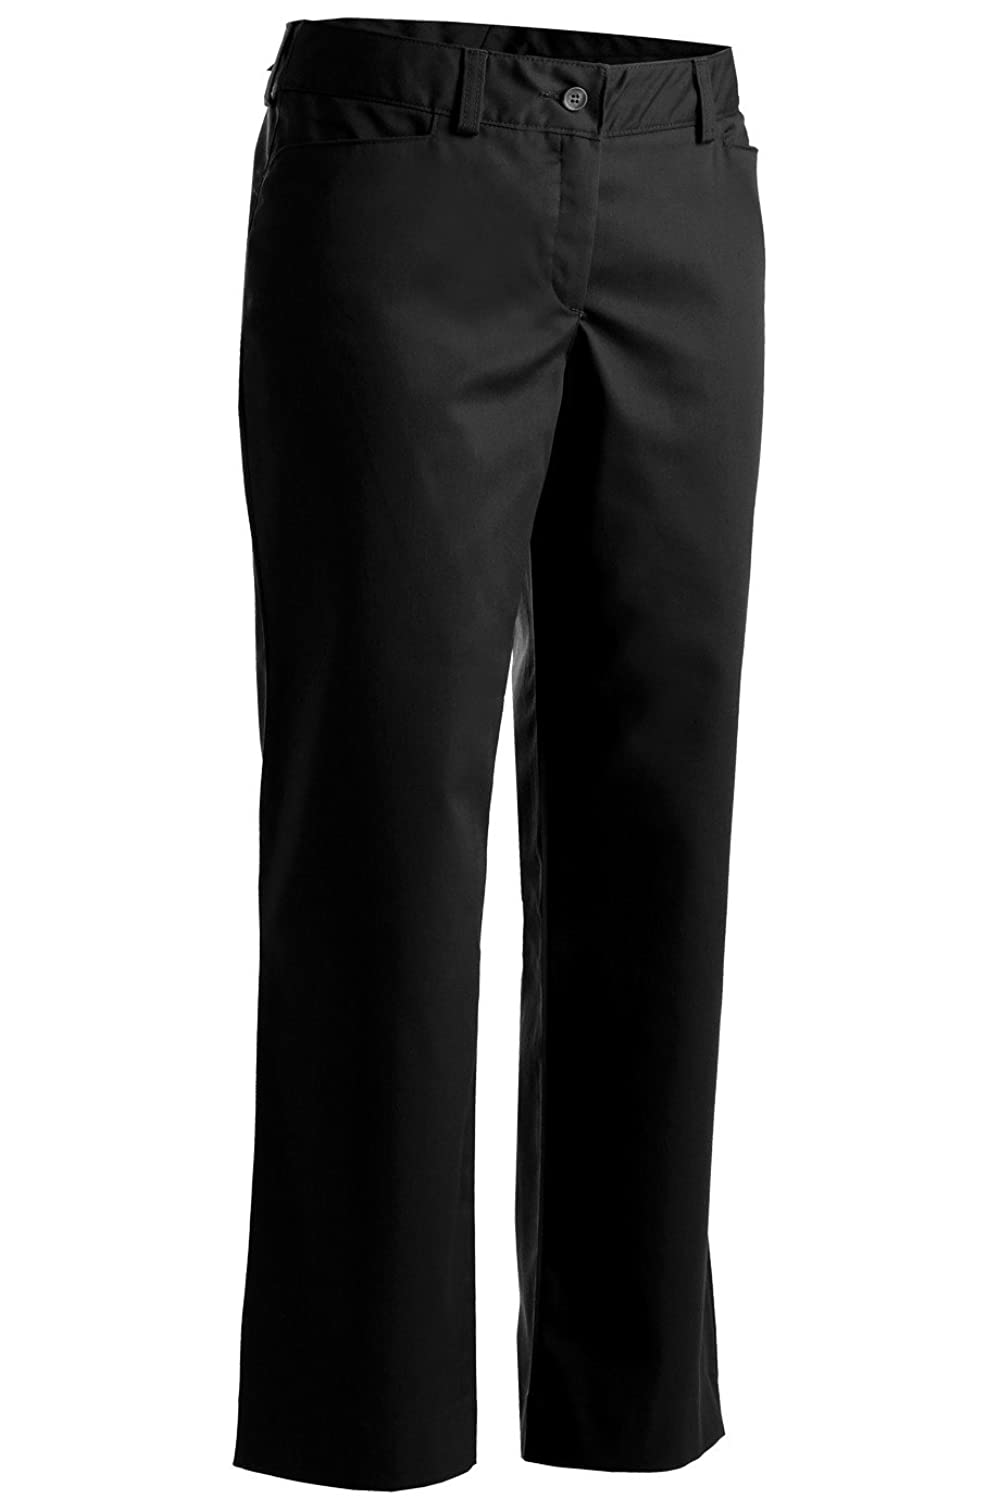 7af268714d low-cost Edwards Mechanical Stretch Mid-Rise Ff Pant - Ladies ...